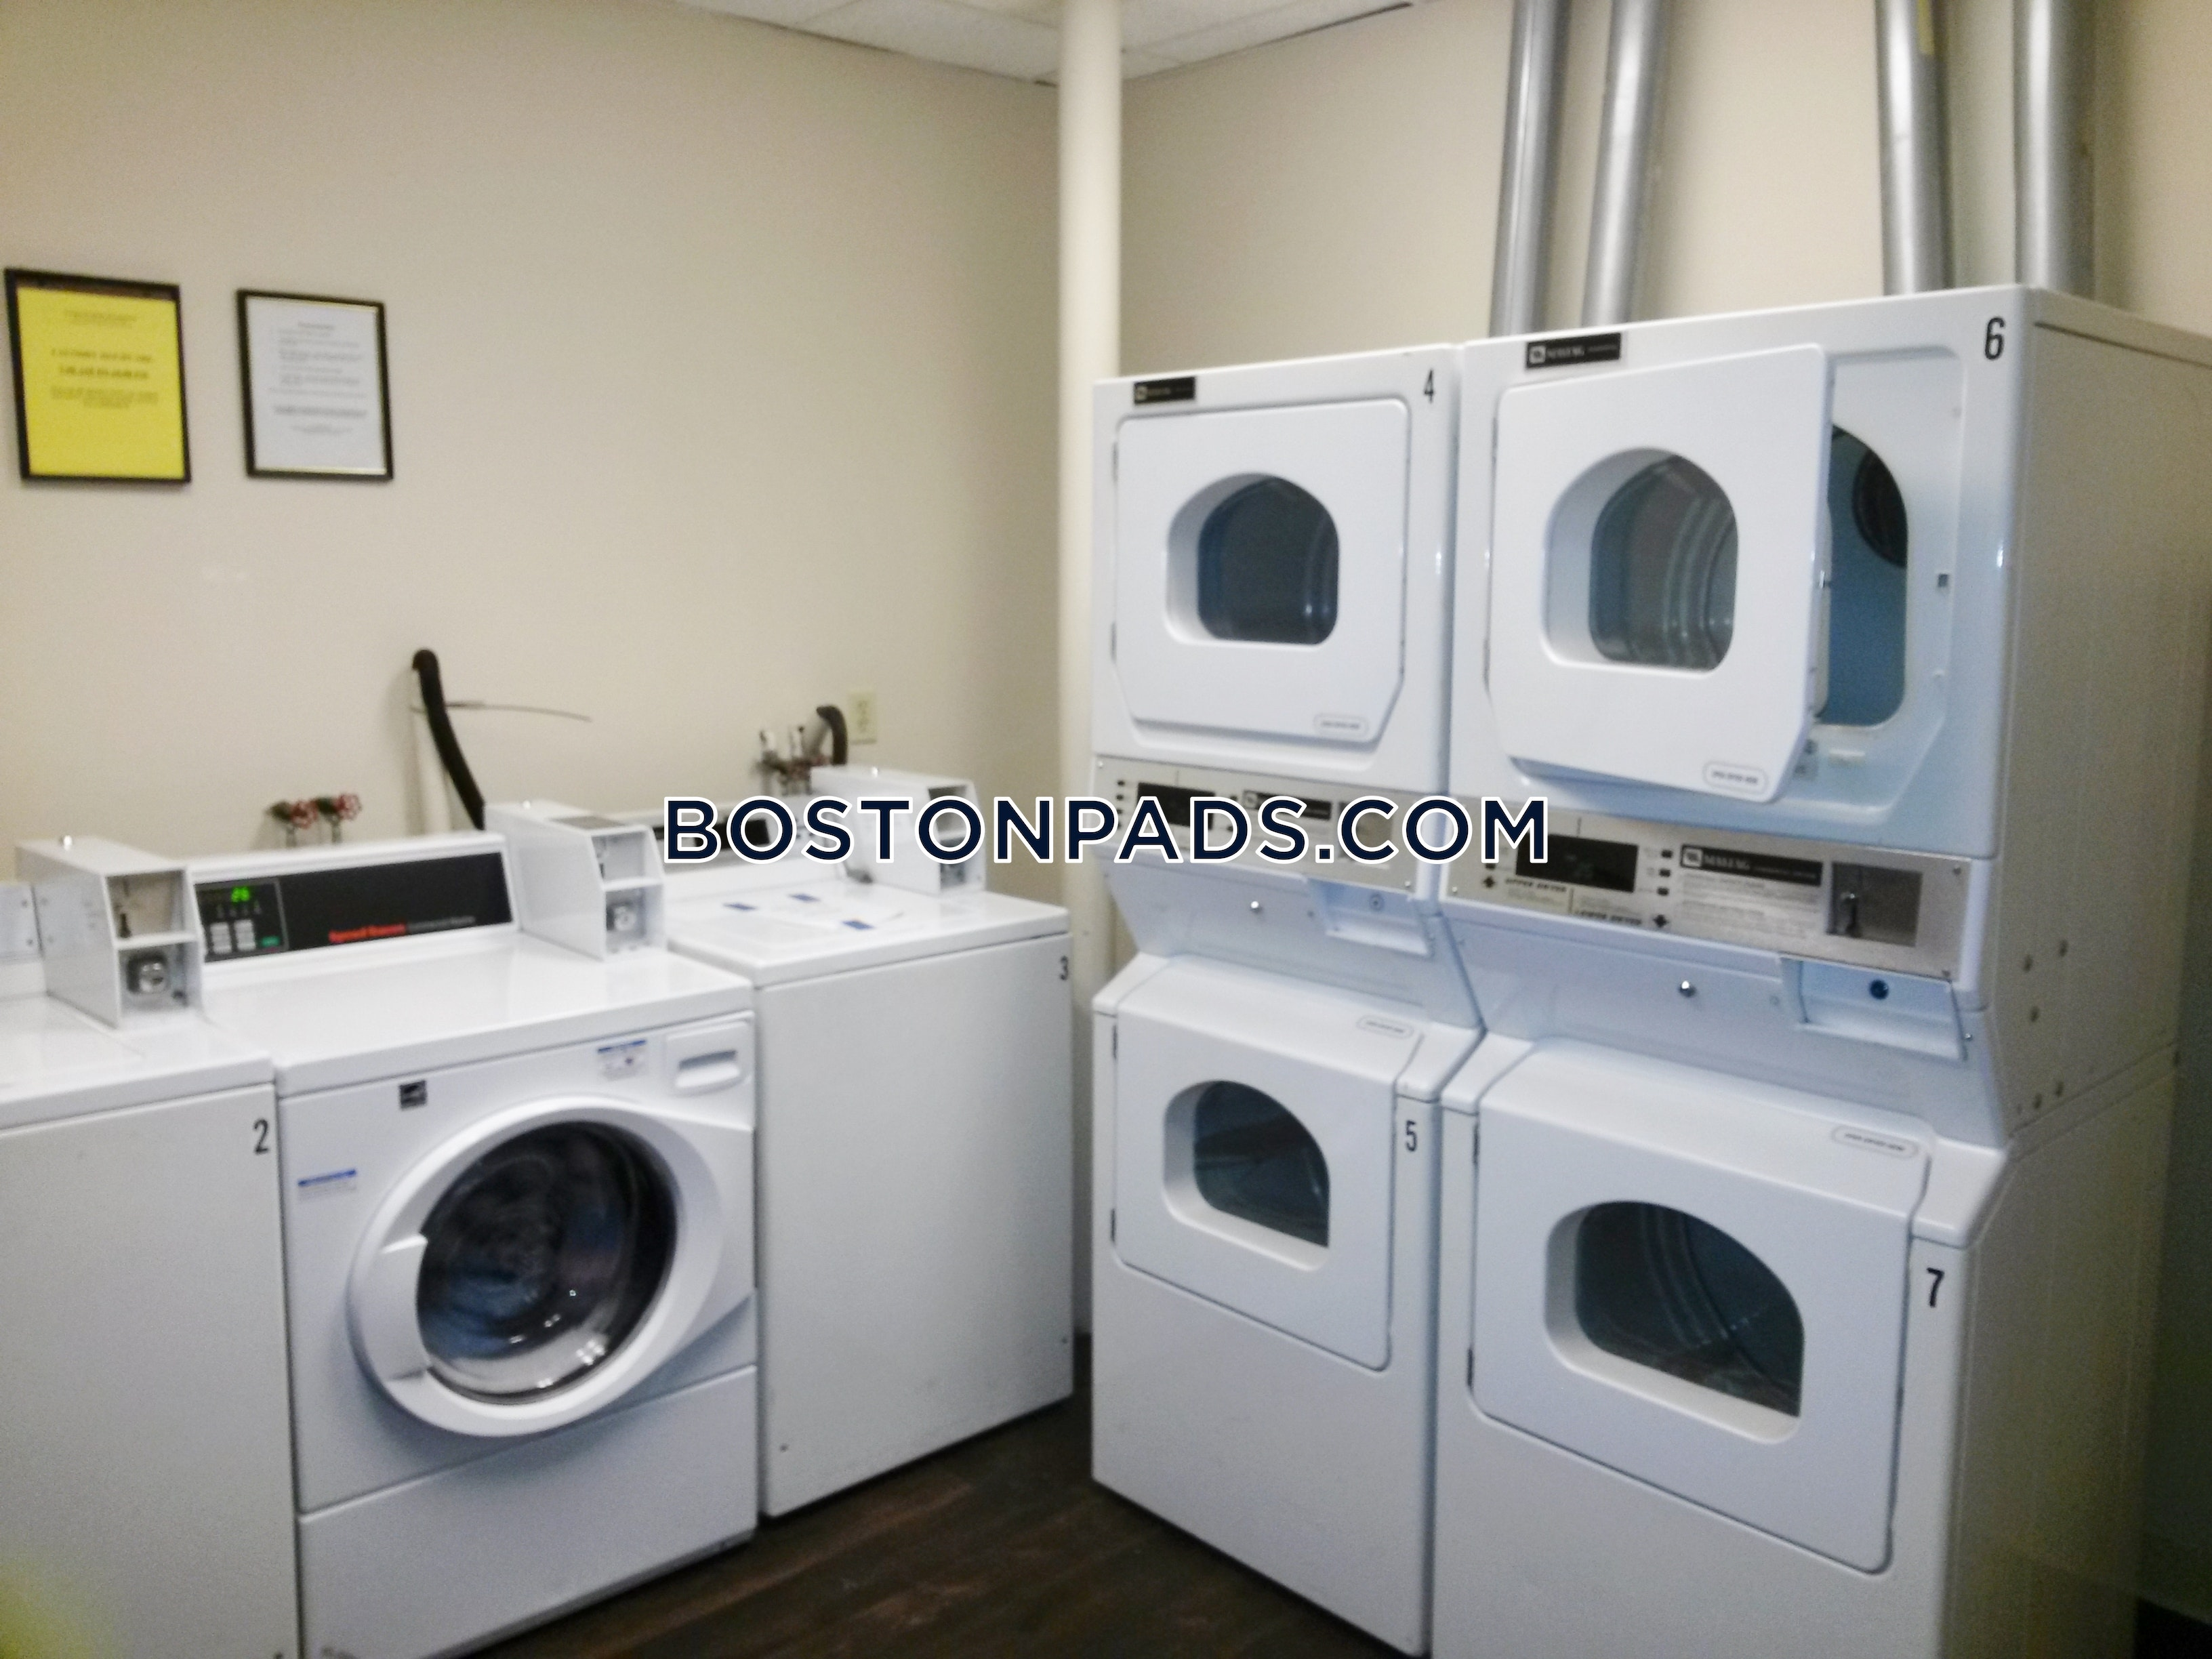 0 Beds 1 Baths - BOSTON - Fenway/Kenmore $1,525